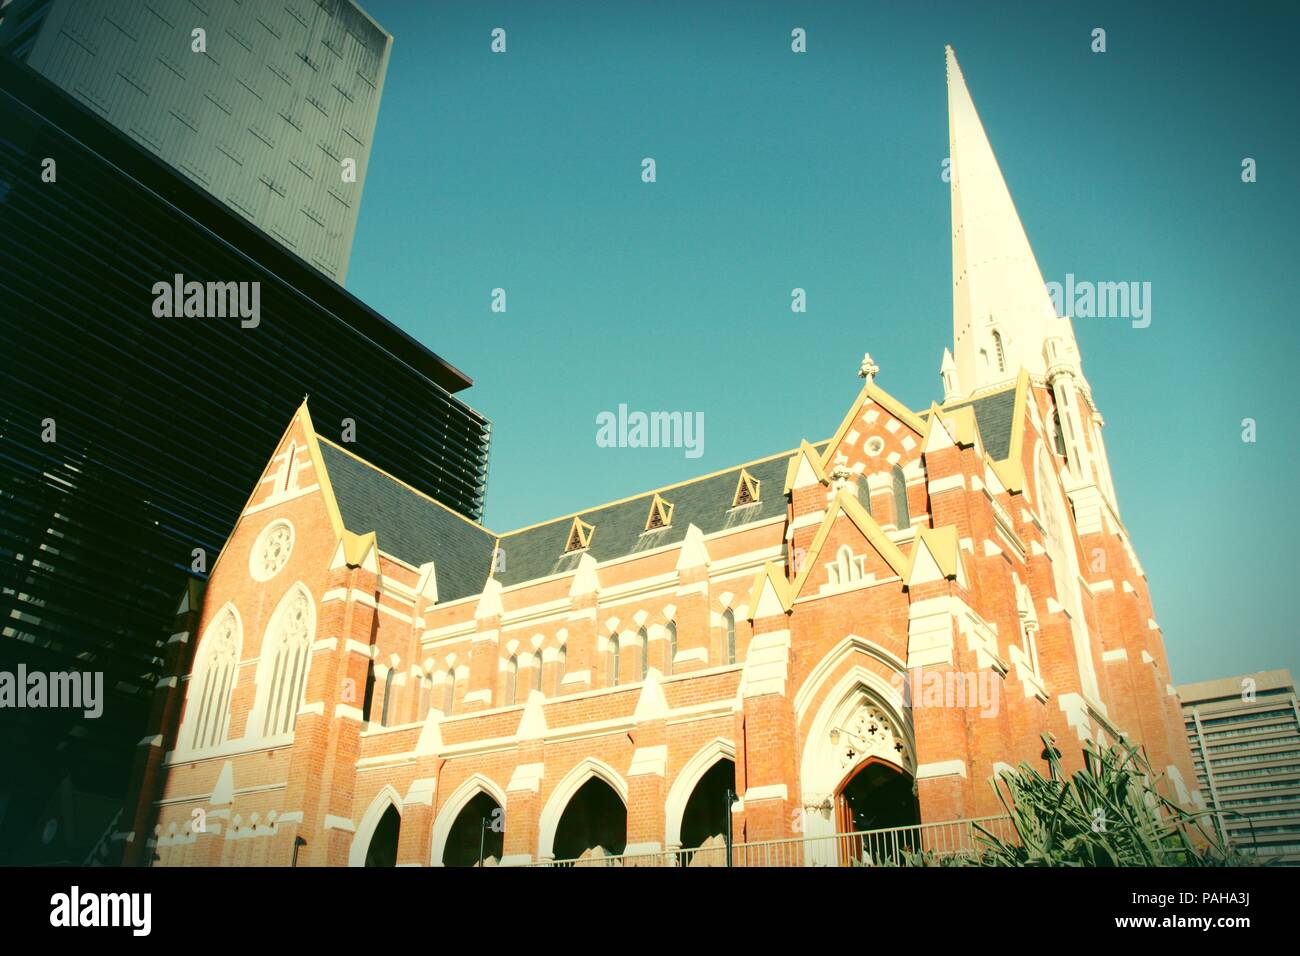 Albert Street Uniting Church surrounded by skyscrapers in Brisbane, Queensland, Australia. Cross processed retro color style. - Stock Image